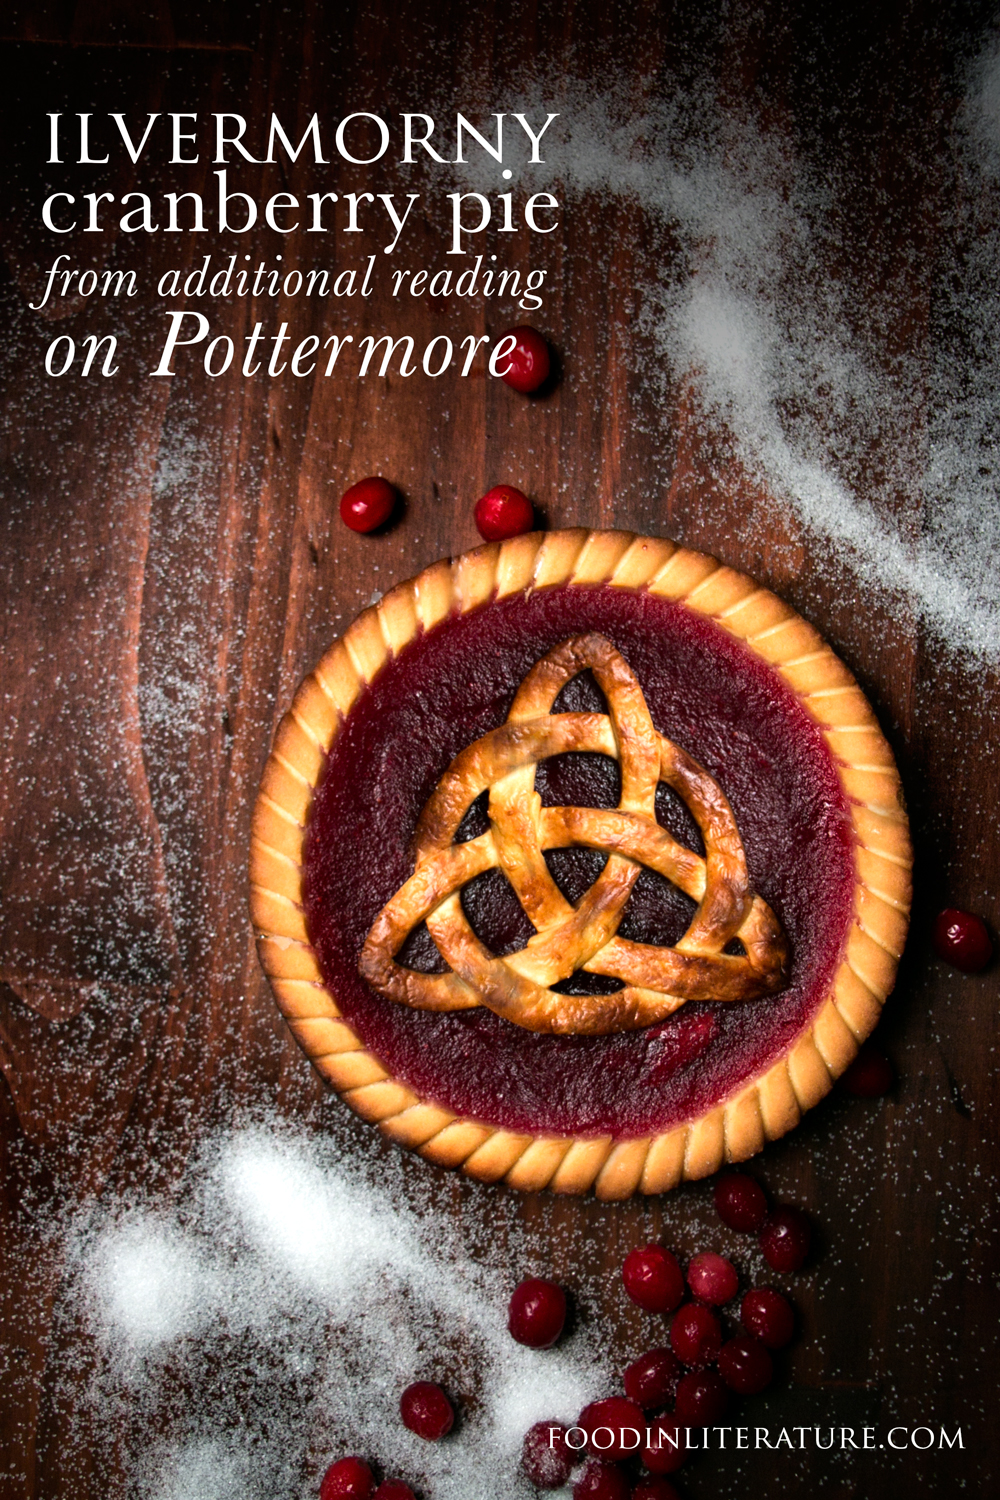 Ready for Fantastic Beasts in November? I hope you've read up on the back history of magic in North America on Pottermore! Inspired by James' love of cranberry pie, we made this recipe. Super simple to make, it'll be perfect for Thanksgiving and Christmas!